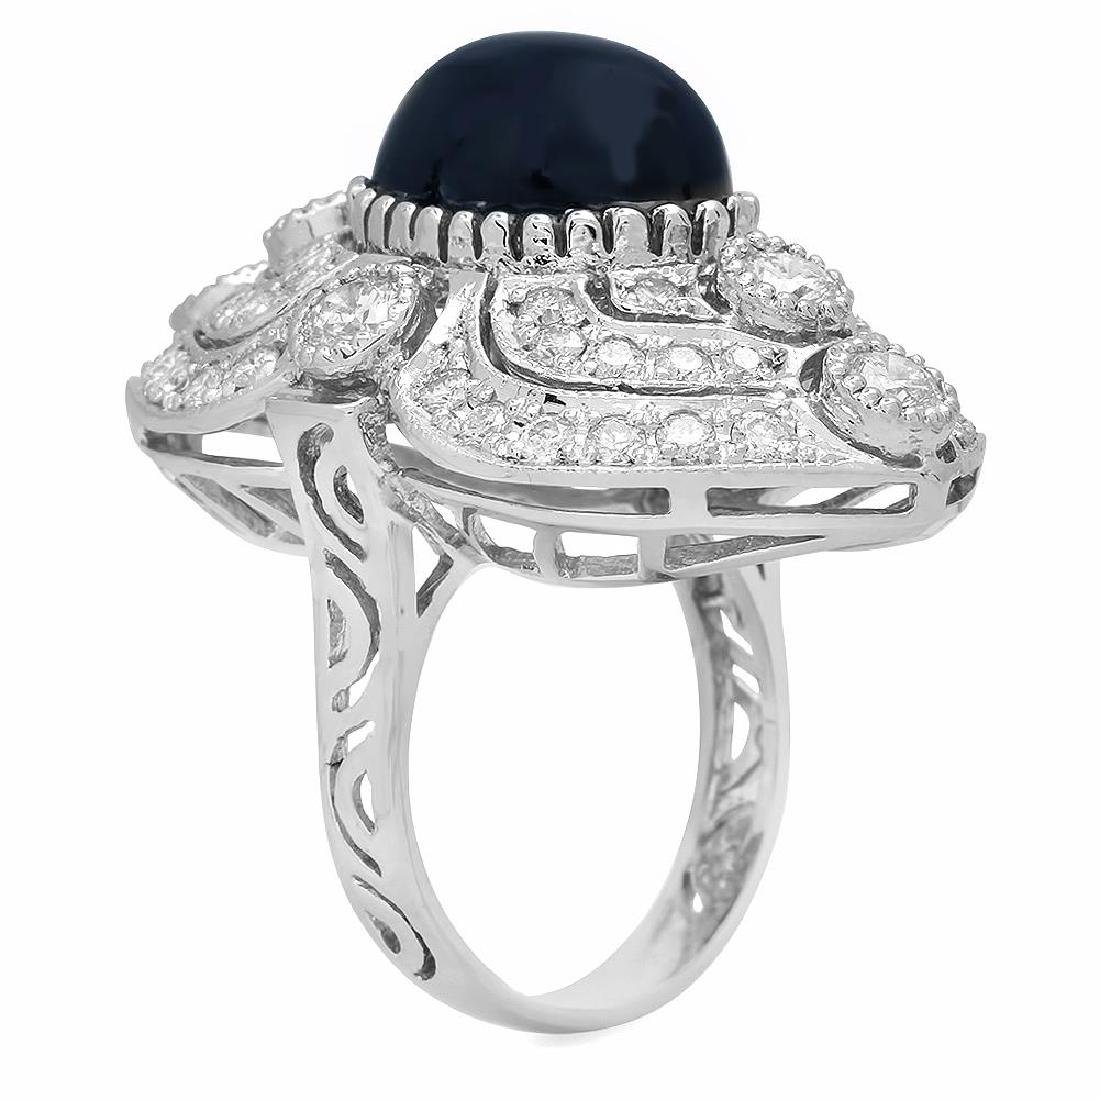 14K Gold 13.58ct Star Sapphire 2.47ct Diamond Ring - 2